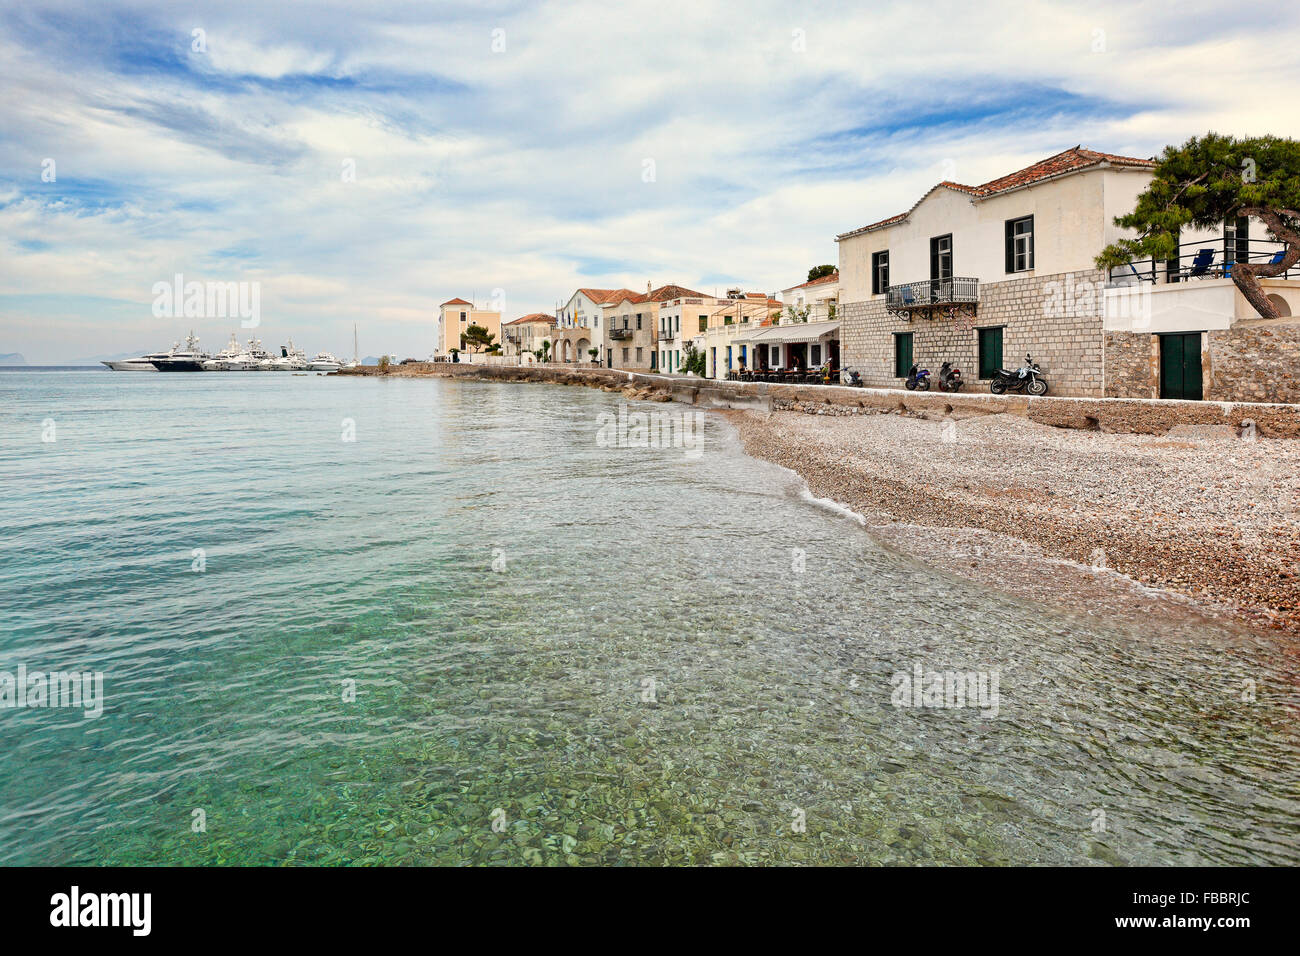 Traditional houses in the town of Spetses island, Greece - Stock Image